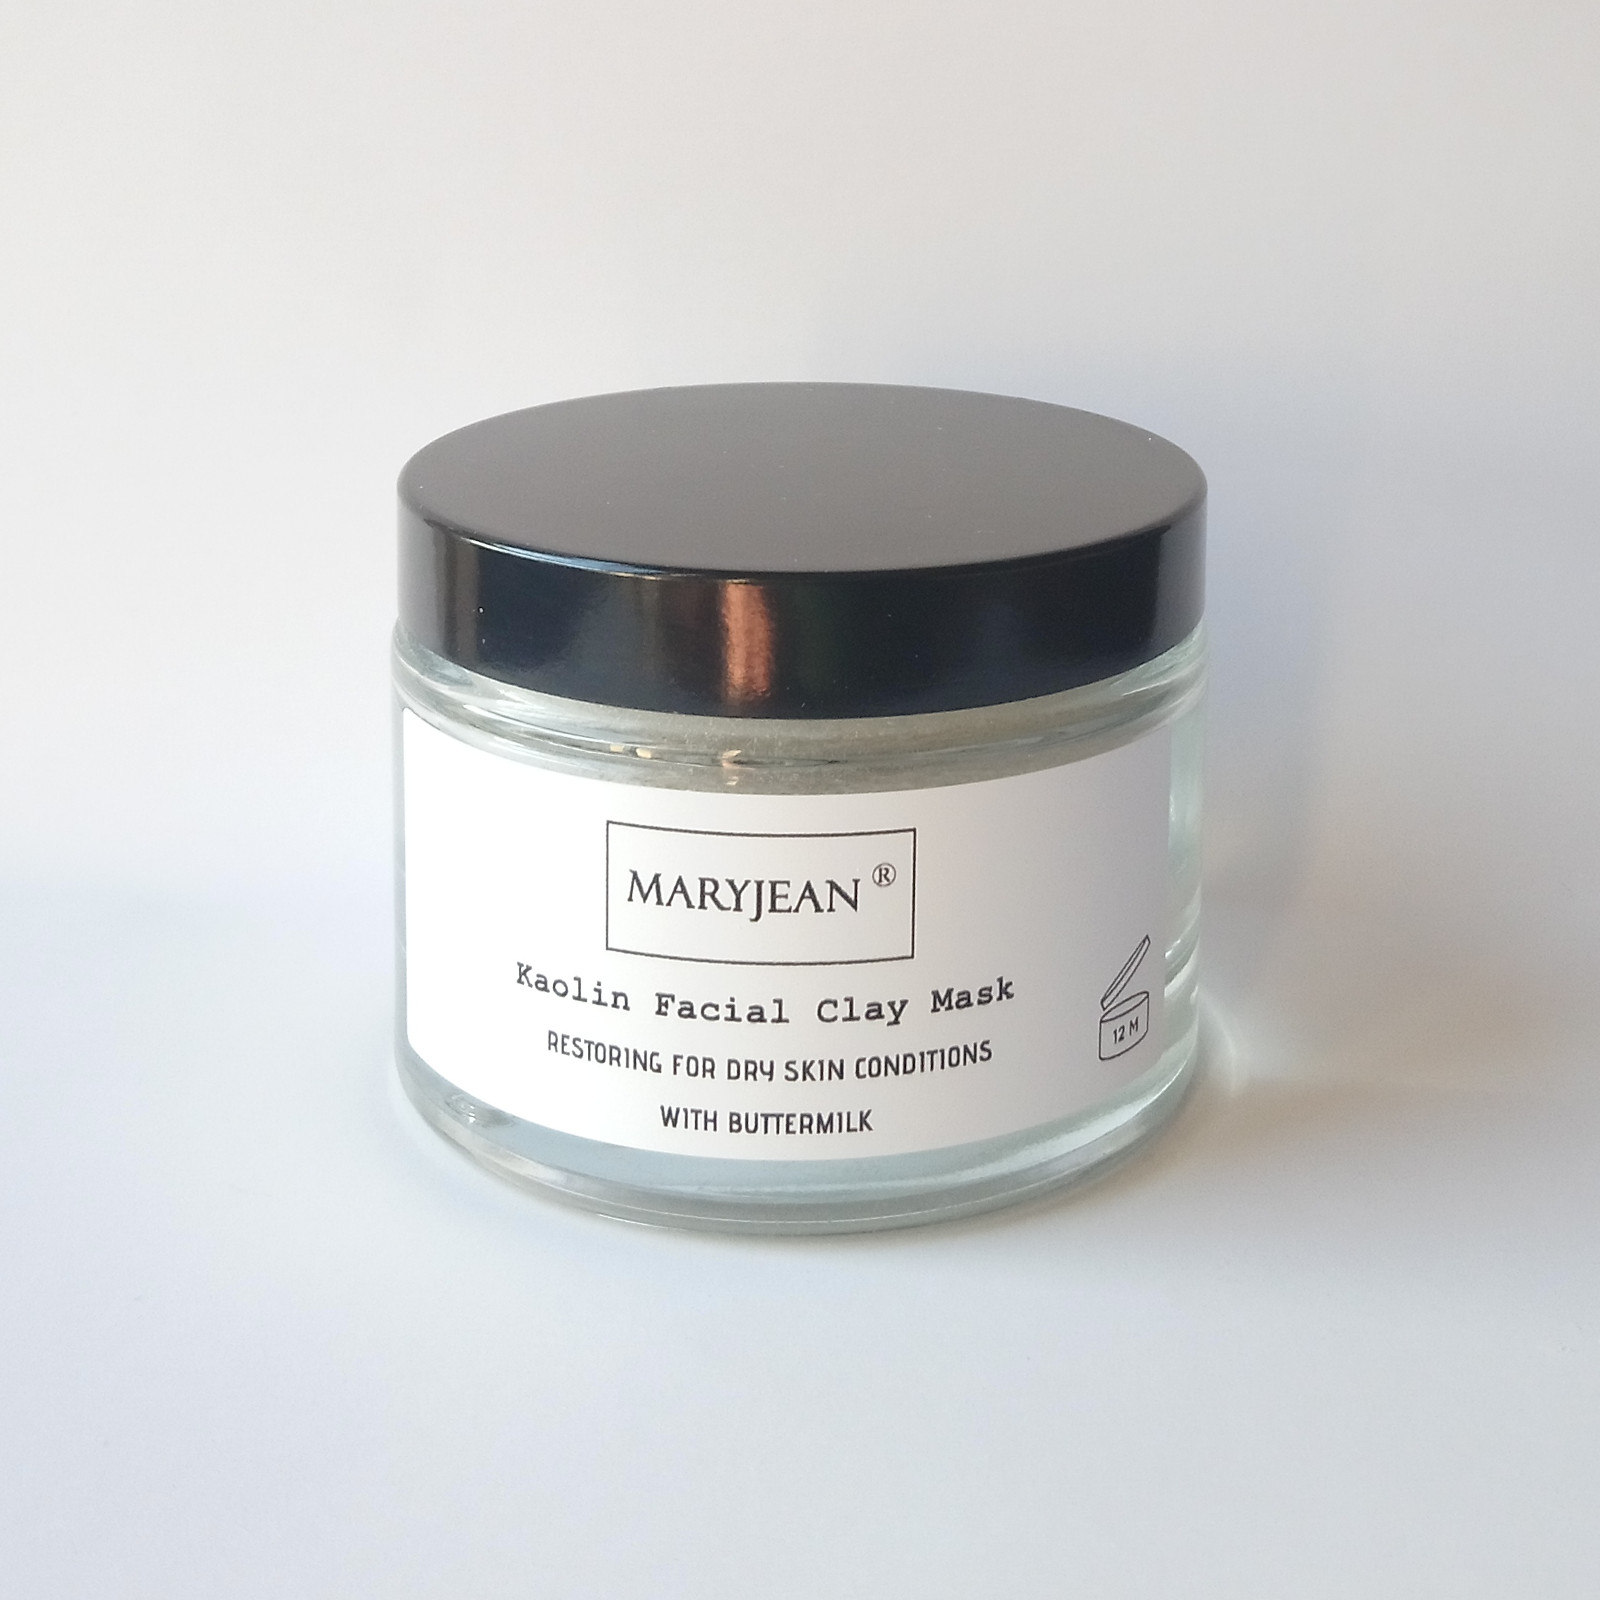 Restoring Kaolin Clay Facial Mask for Dry Skin Conditions with Buttermilk A mild mask for treating dry irritable and sensitive skin and scalp improves moisture beneficial for sun damaged skin